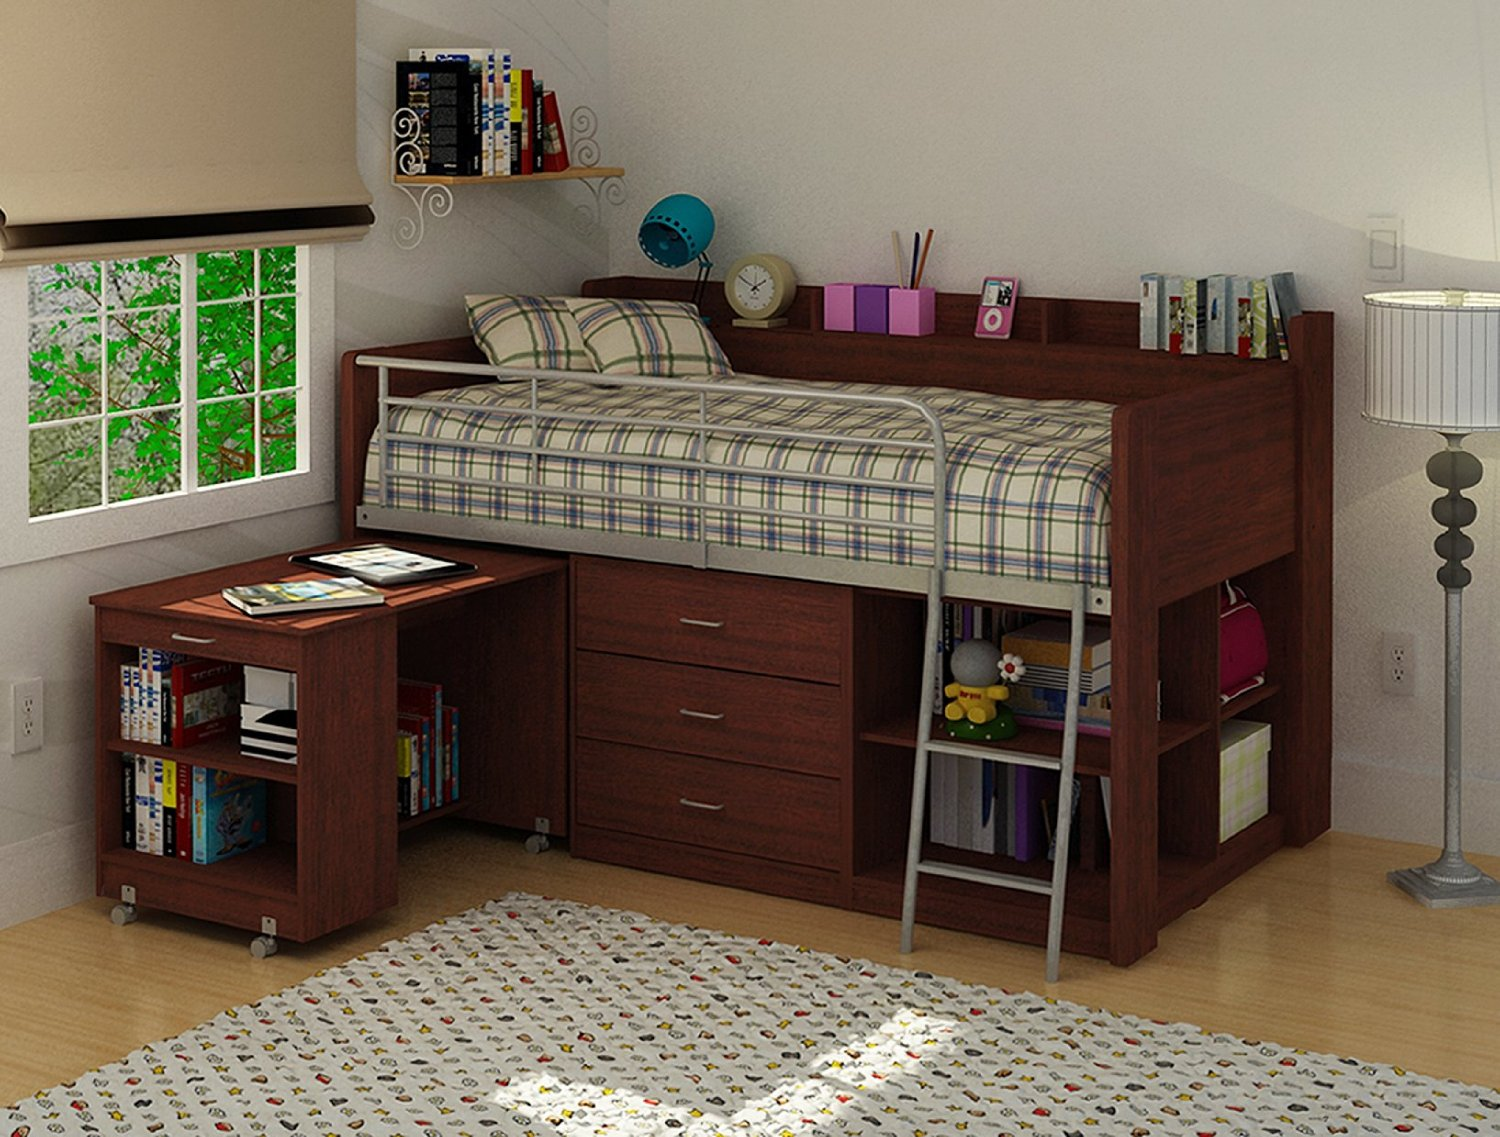 Wooden loft bed with desk most recommended space available furniture set homesfeed - Desks for bedrooms ...